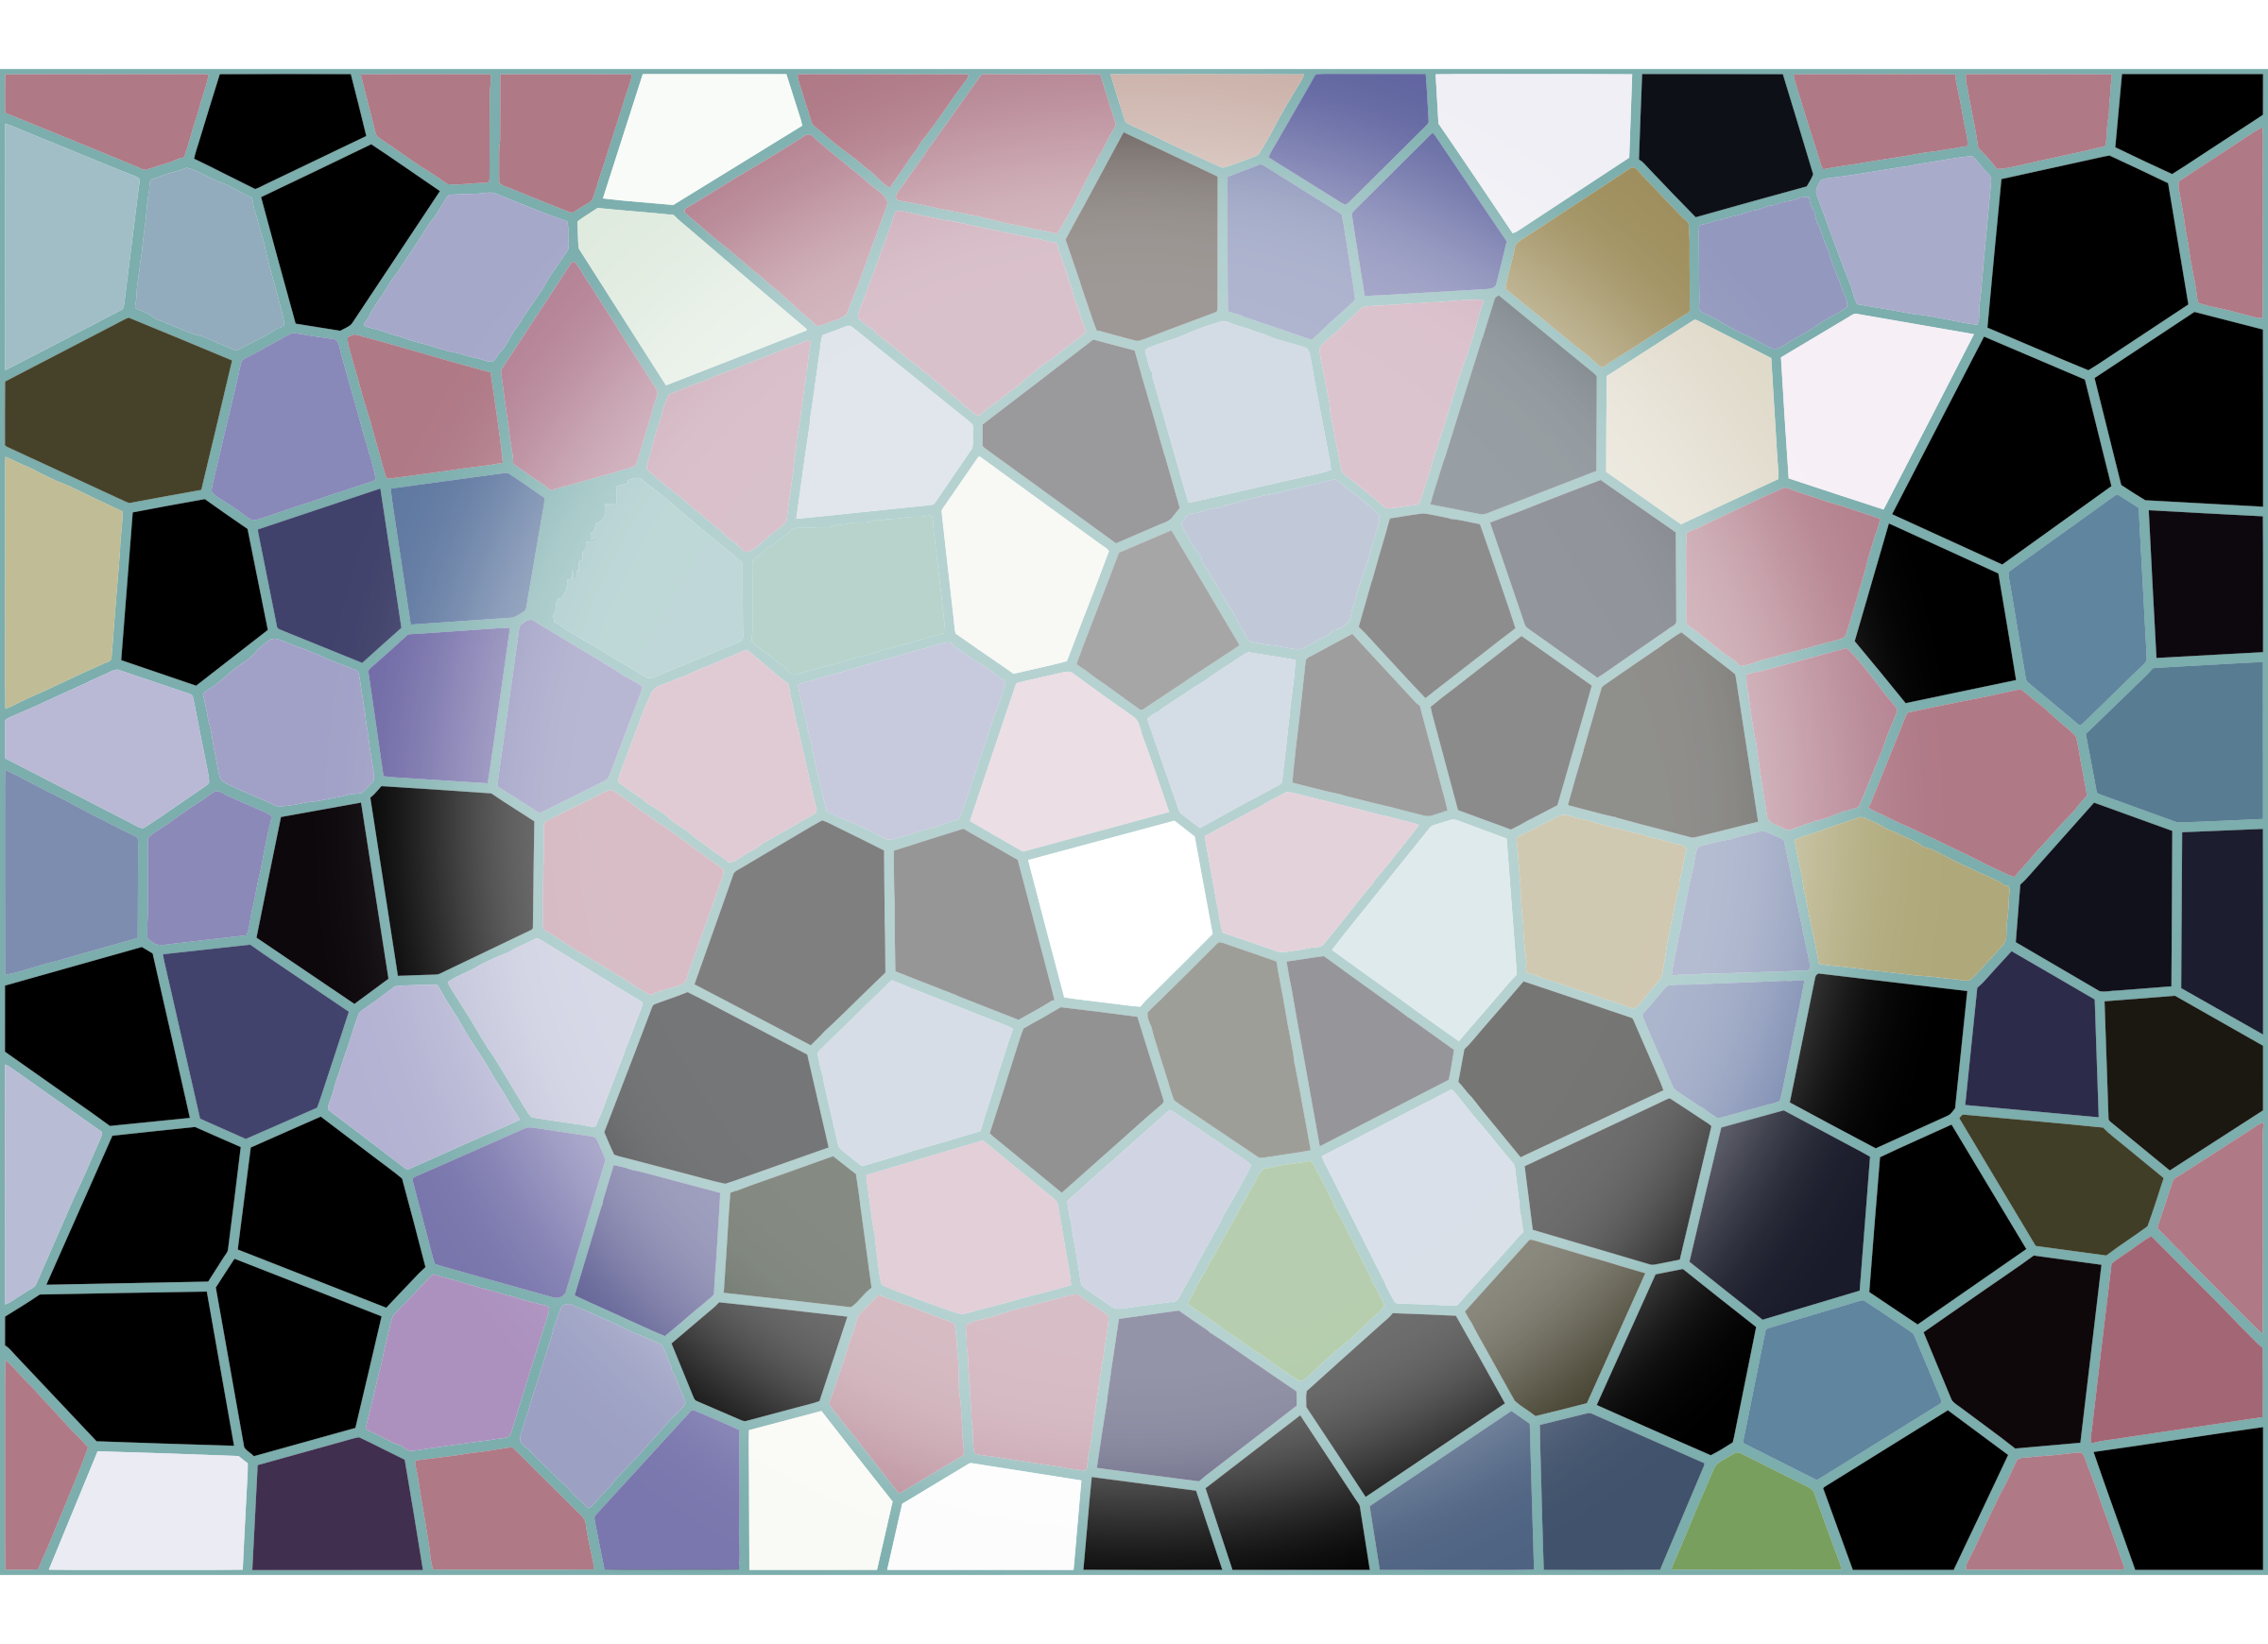 Abstract Mosaic Tiles Background by GDJ